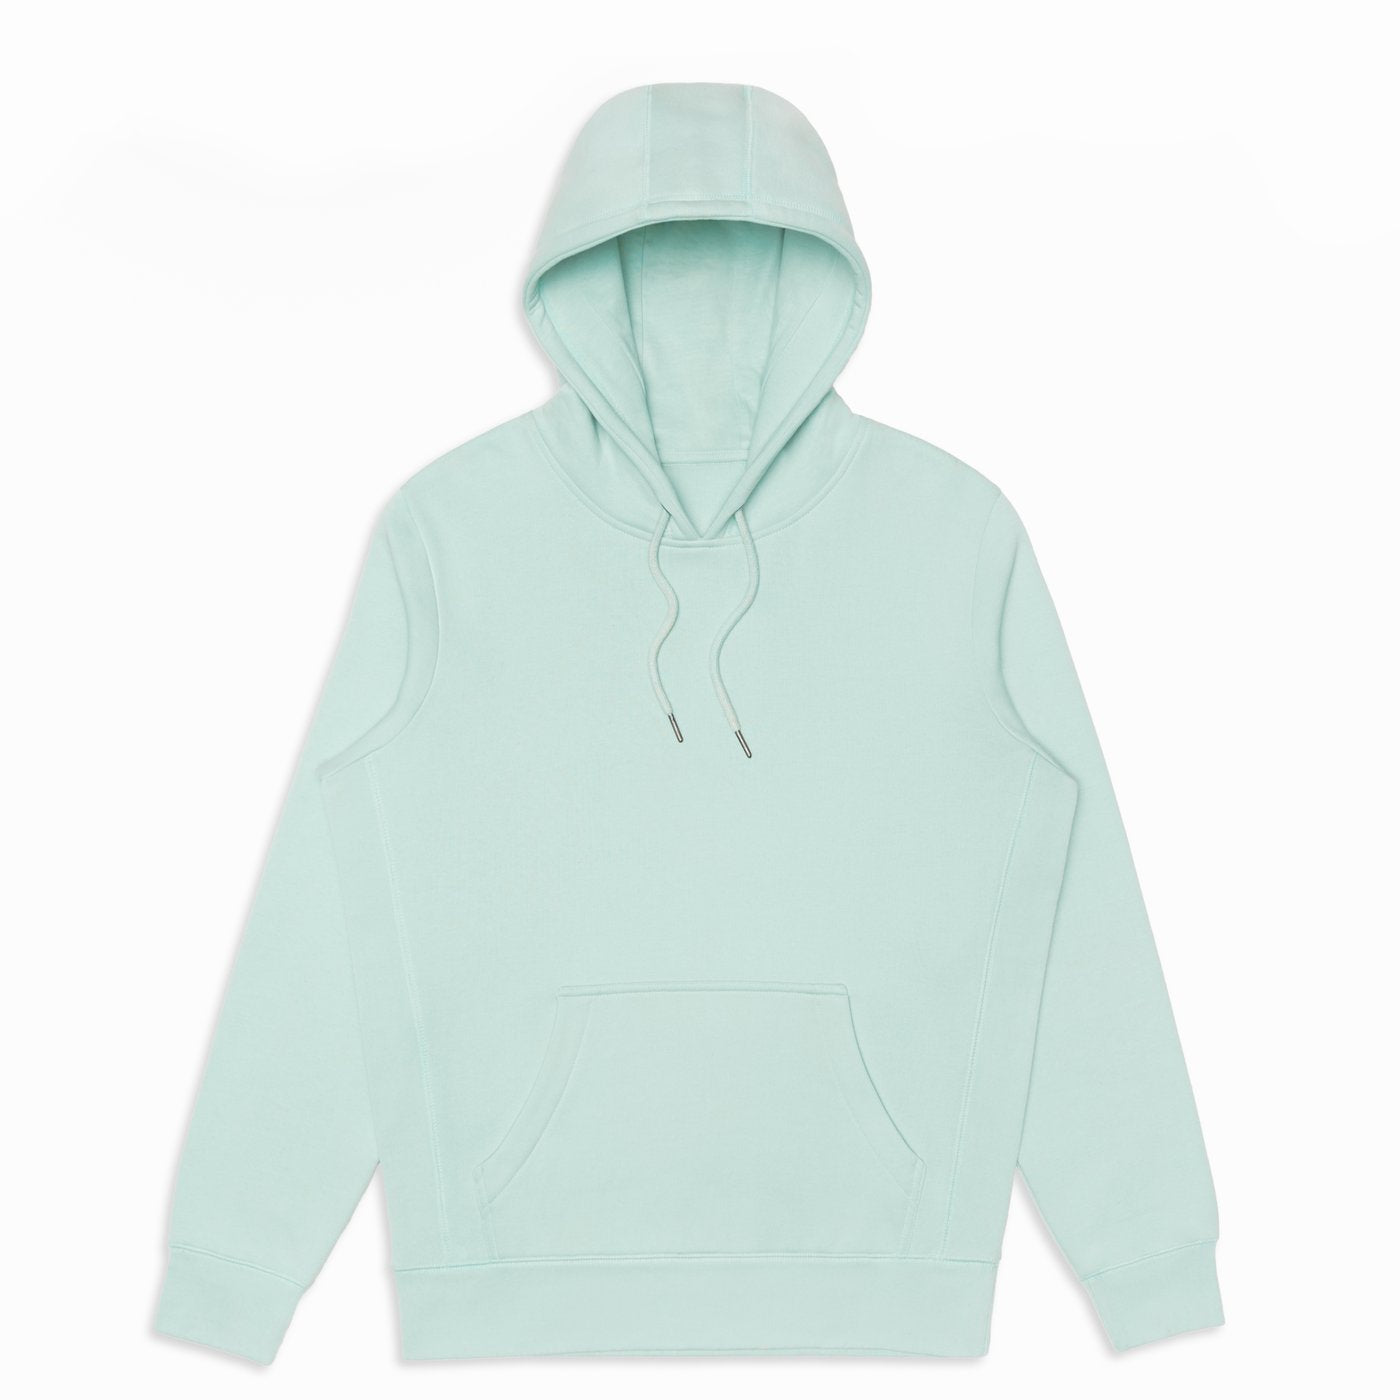 Seafoam Organic Cotton Hooded Sweatshirt